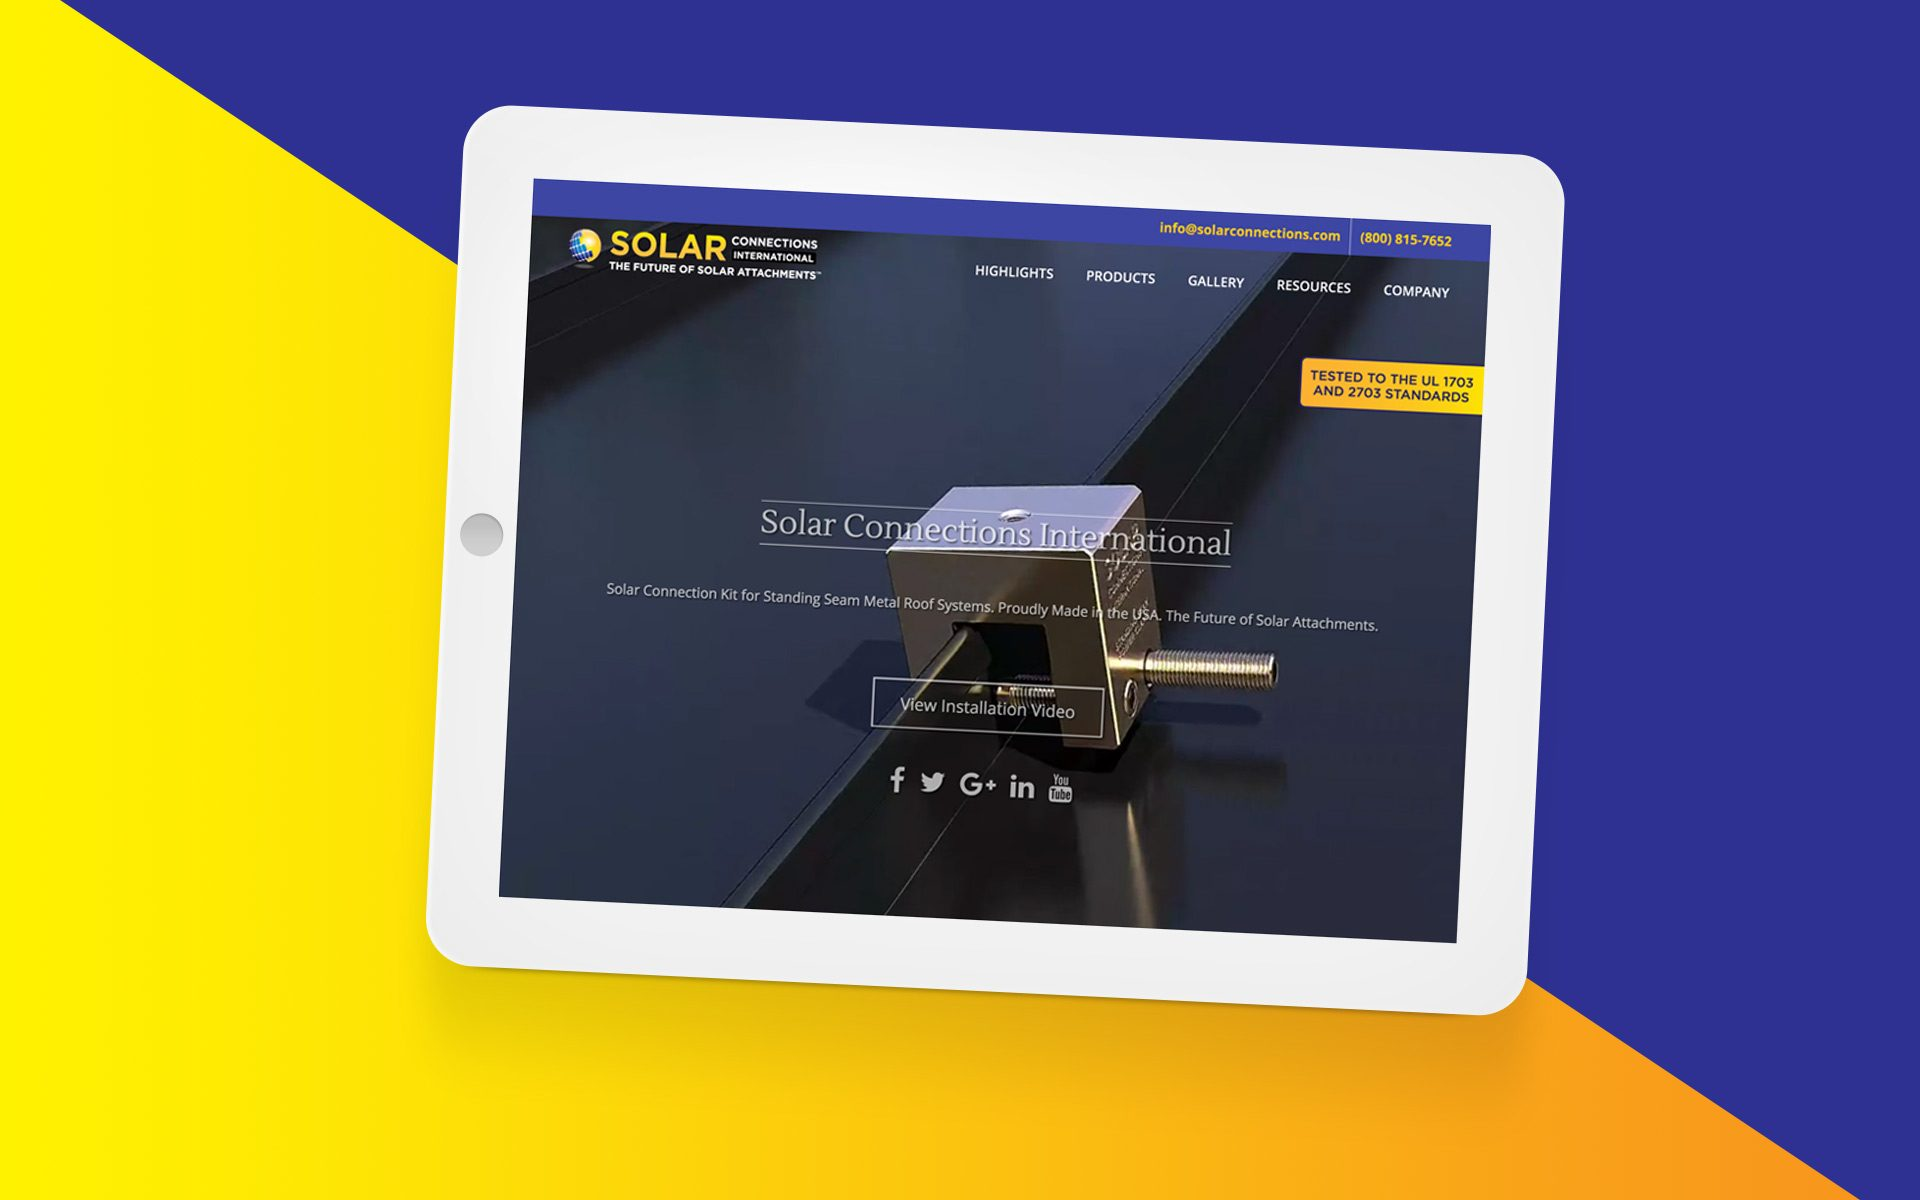 Solar Connections International Website Featured Image